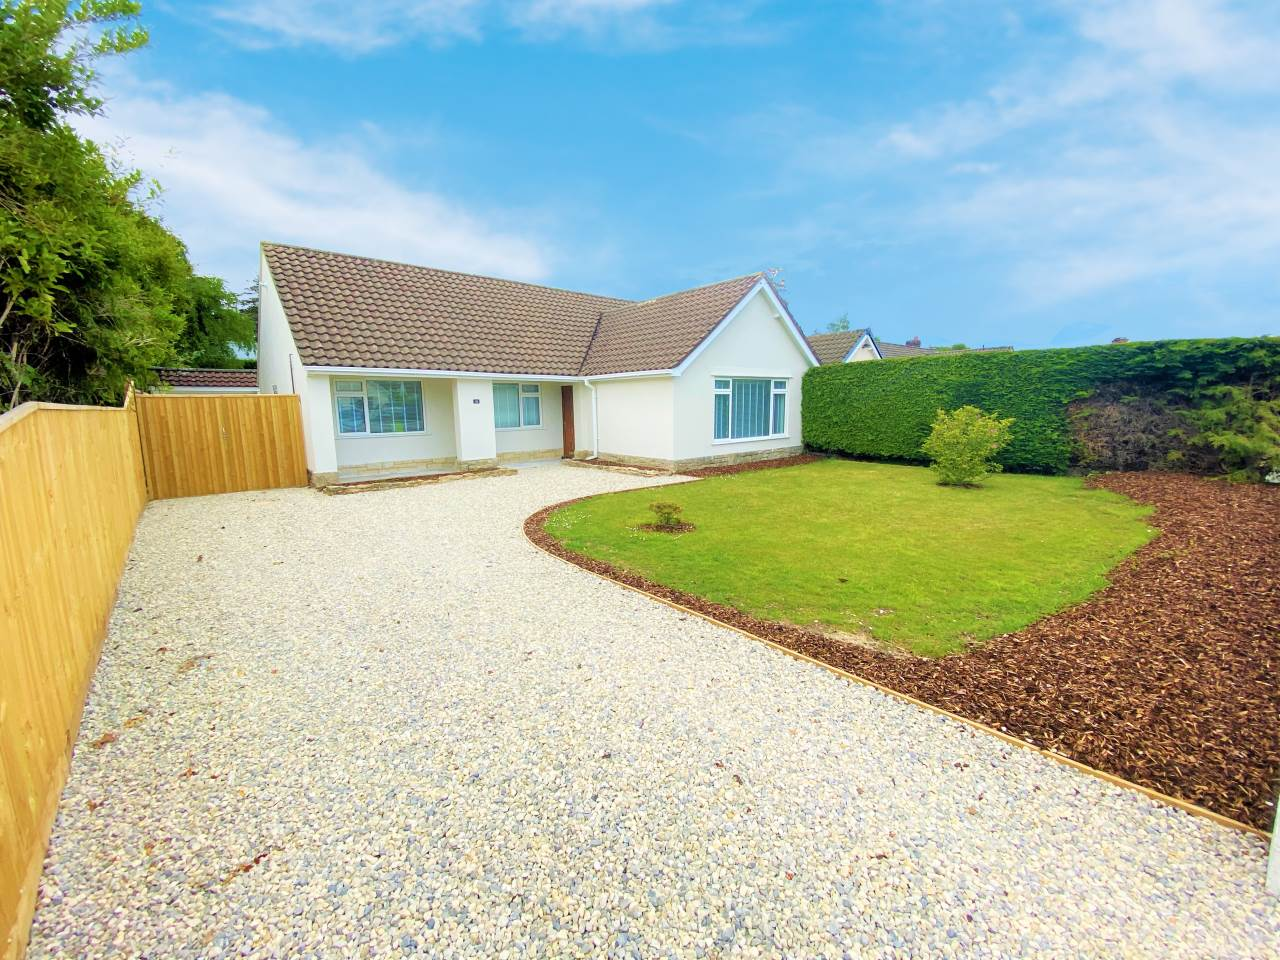 * DETACHED BUNGALOW * COMPLETELY RE-FURBISHED * THREE DOUBLE BEDROOMS * RE WIRED * NEW HEATING SYSTEM * OPEN PLAN KITCHEN/DINER WITH BI-FOLD DOORS * UTILITY ROOM * LUXURIOUS BATHROOM * OFF ROAD PARKING & GARAGE *  LARGE SECLUDED GARDEN * NO CHAIN *